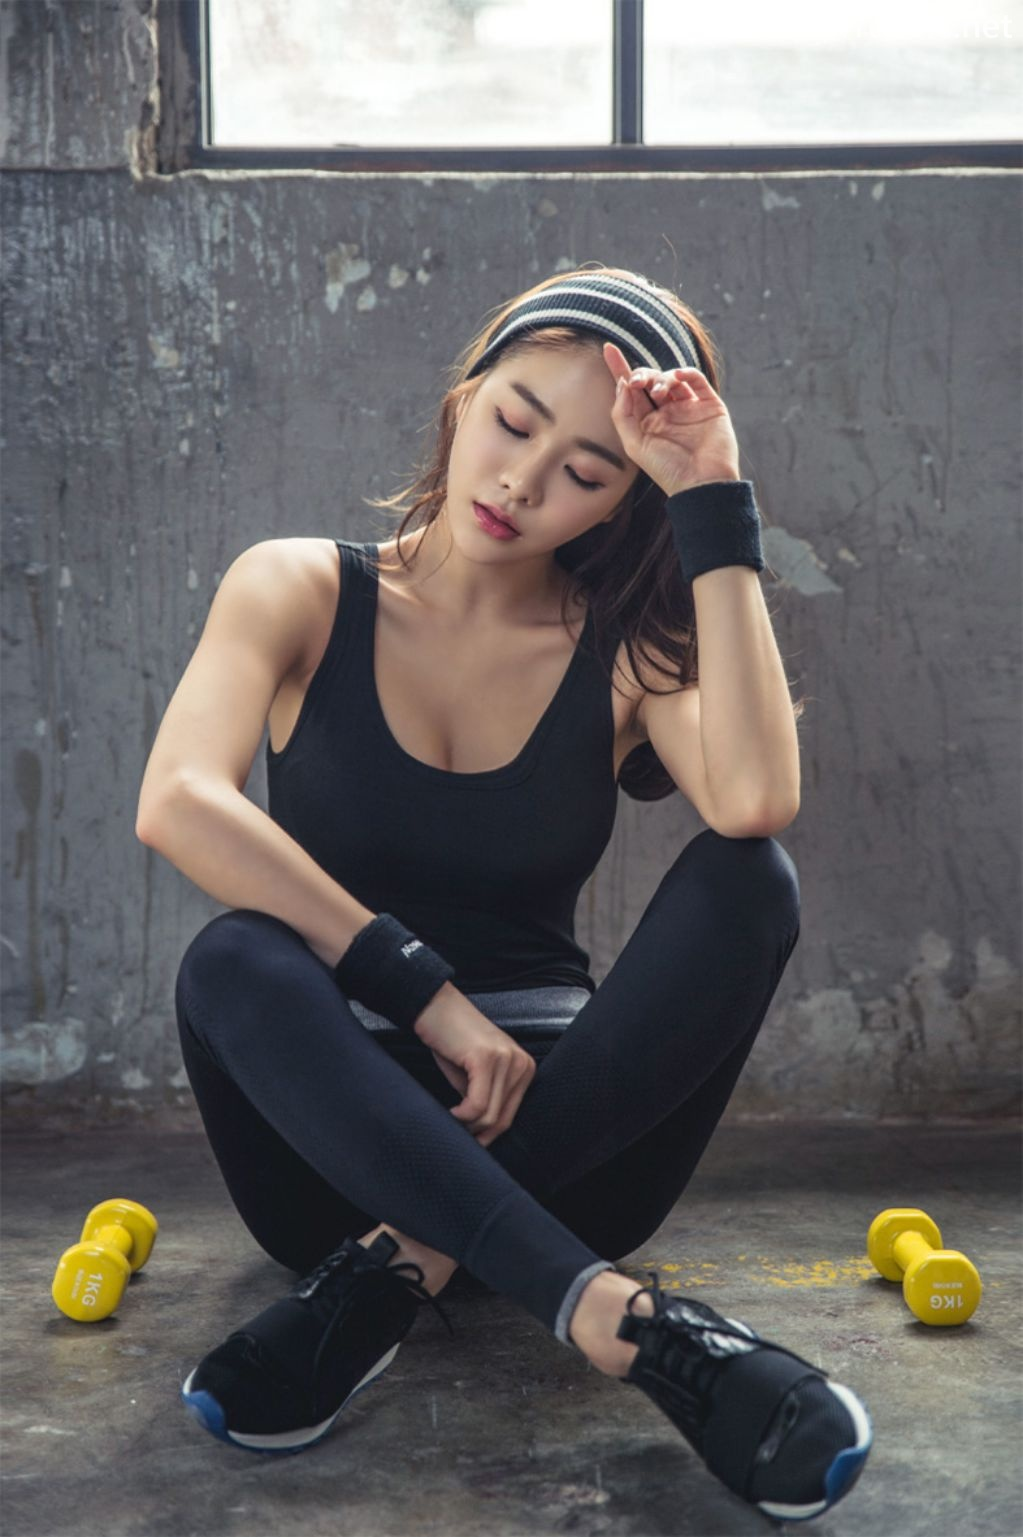 Image Korean Beautiful Model - An Seo Rin - Fitness Fashion Photography - TruePic.net - Picture-9